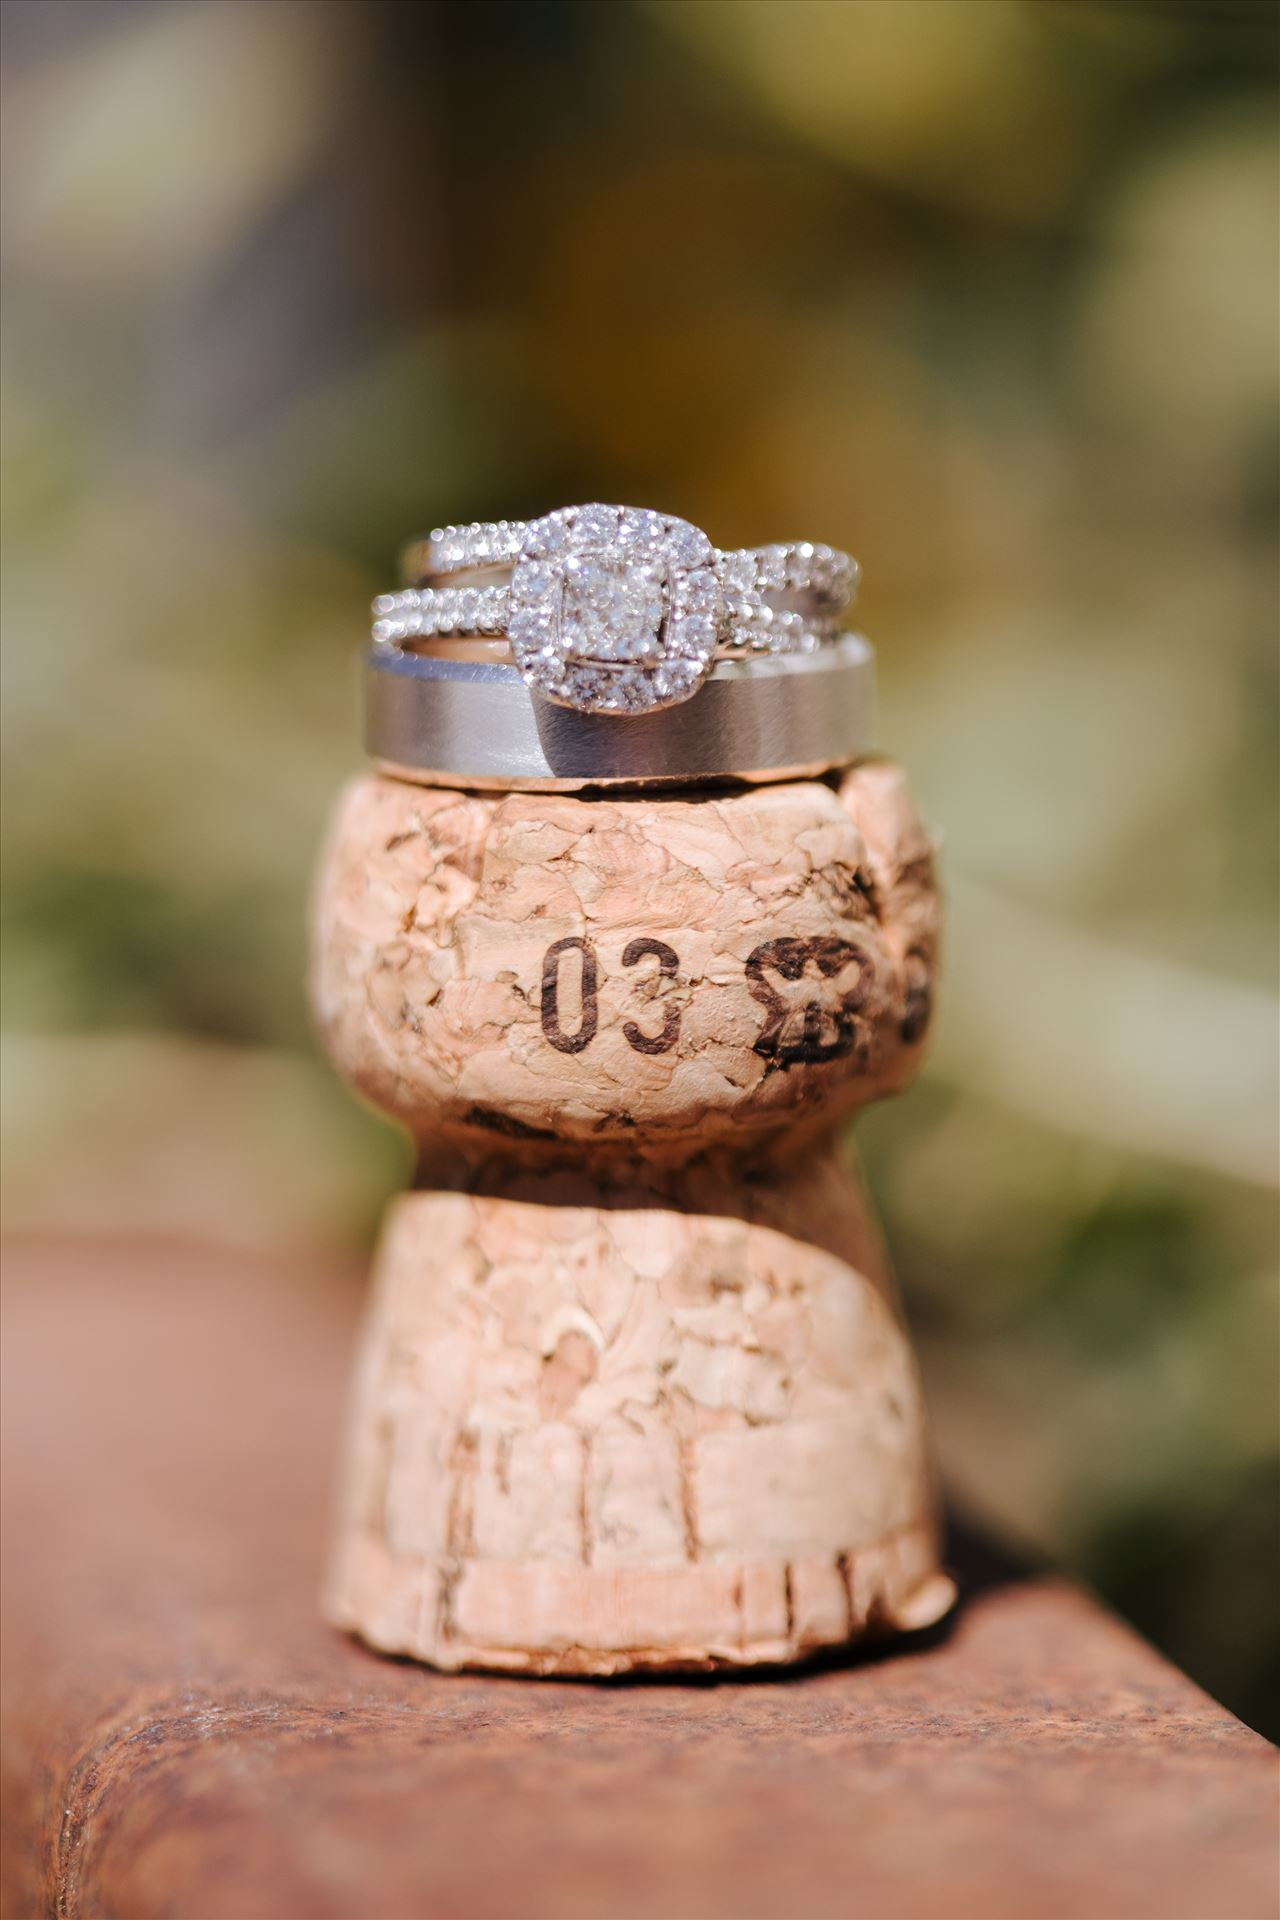 _Y9A6475.JPGTooth and Nail Winery elegant and formal wedding in Paso Robles California wine country by Mirror's Edge Photography, San Luis Obispo County Wedding Photographer. Wedding rings on wine cork